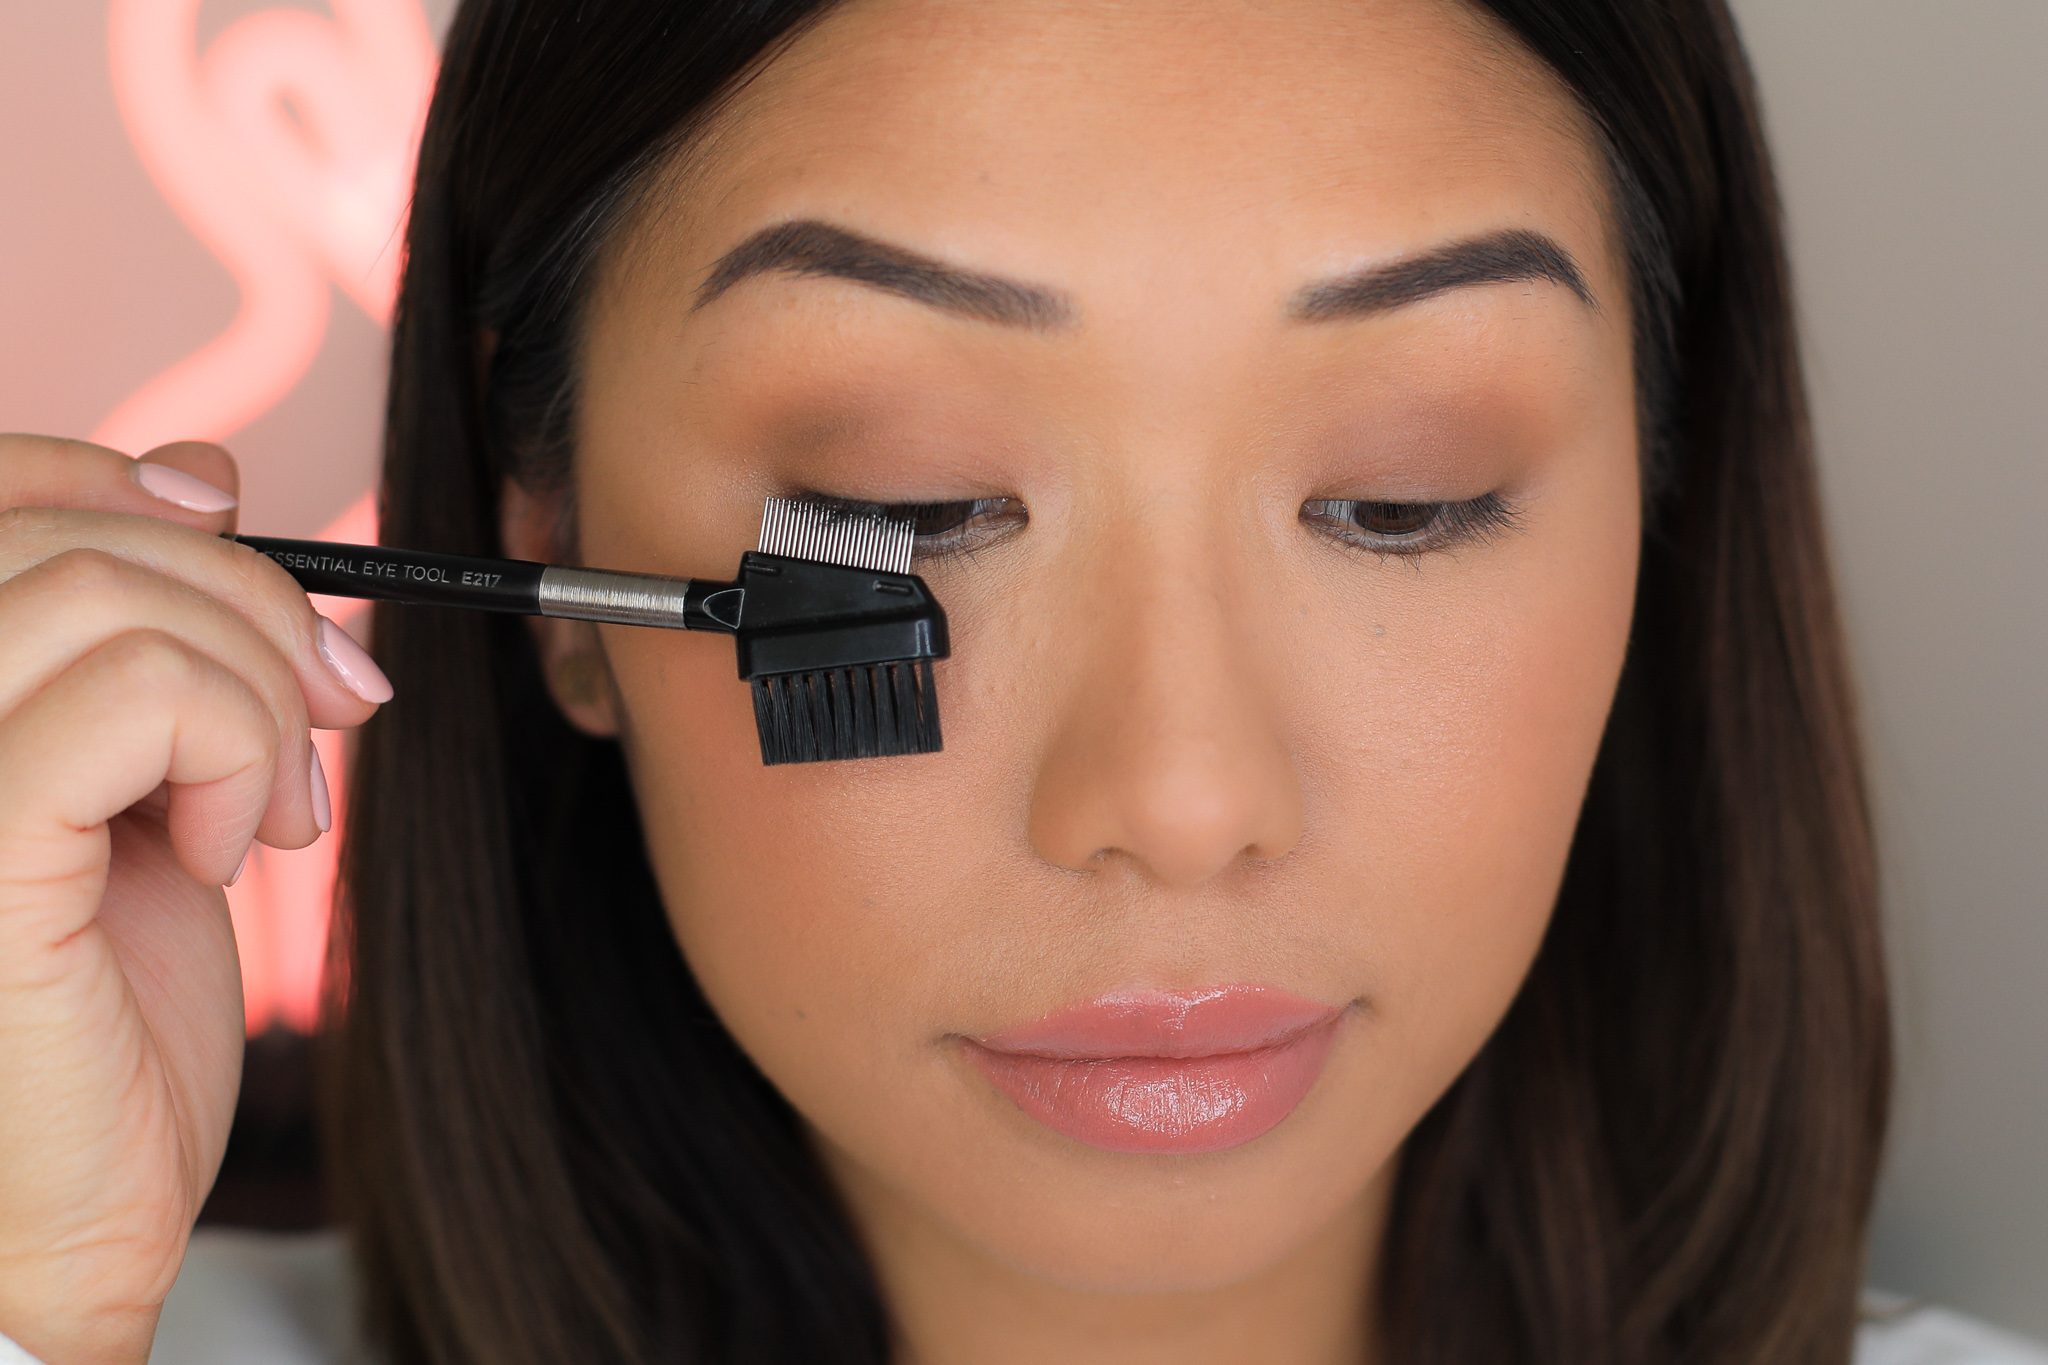 - Step 1: Comb and separate your lashes using the Urban Decay Essential Eye Tool.